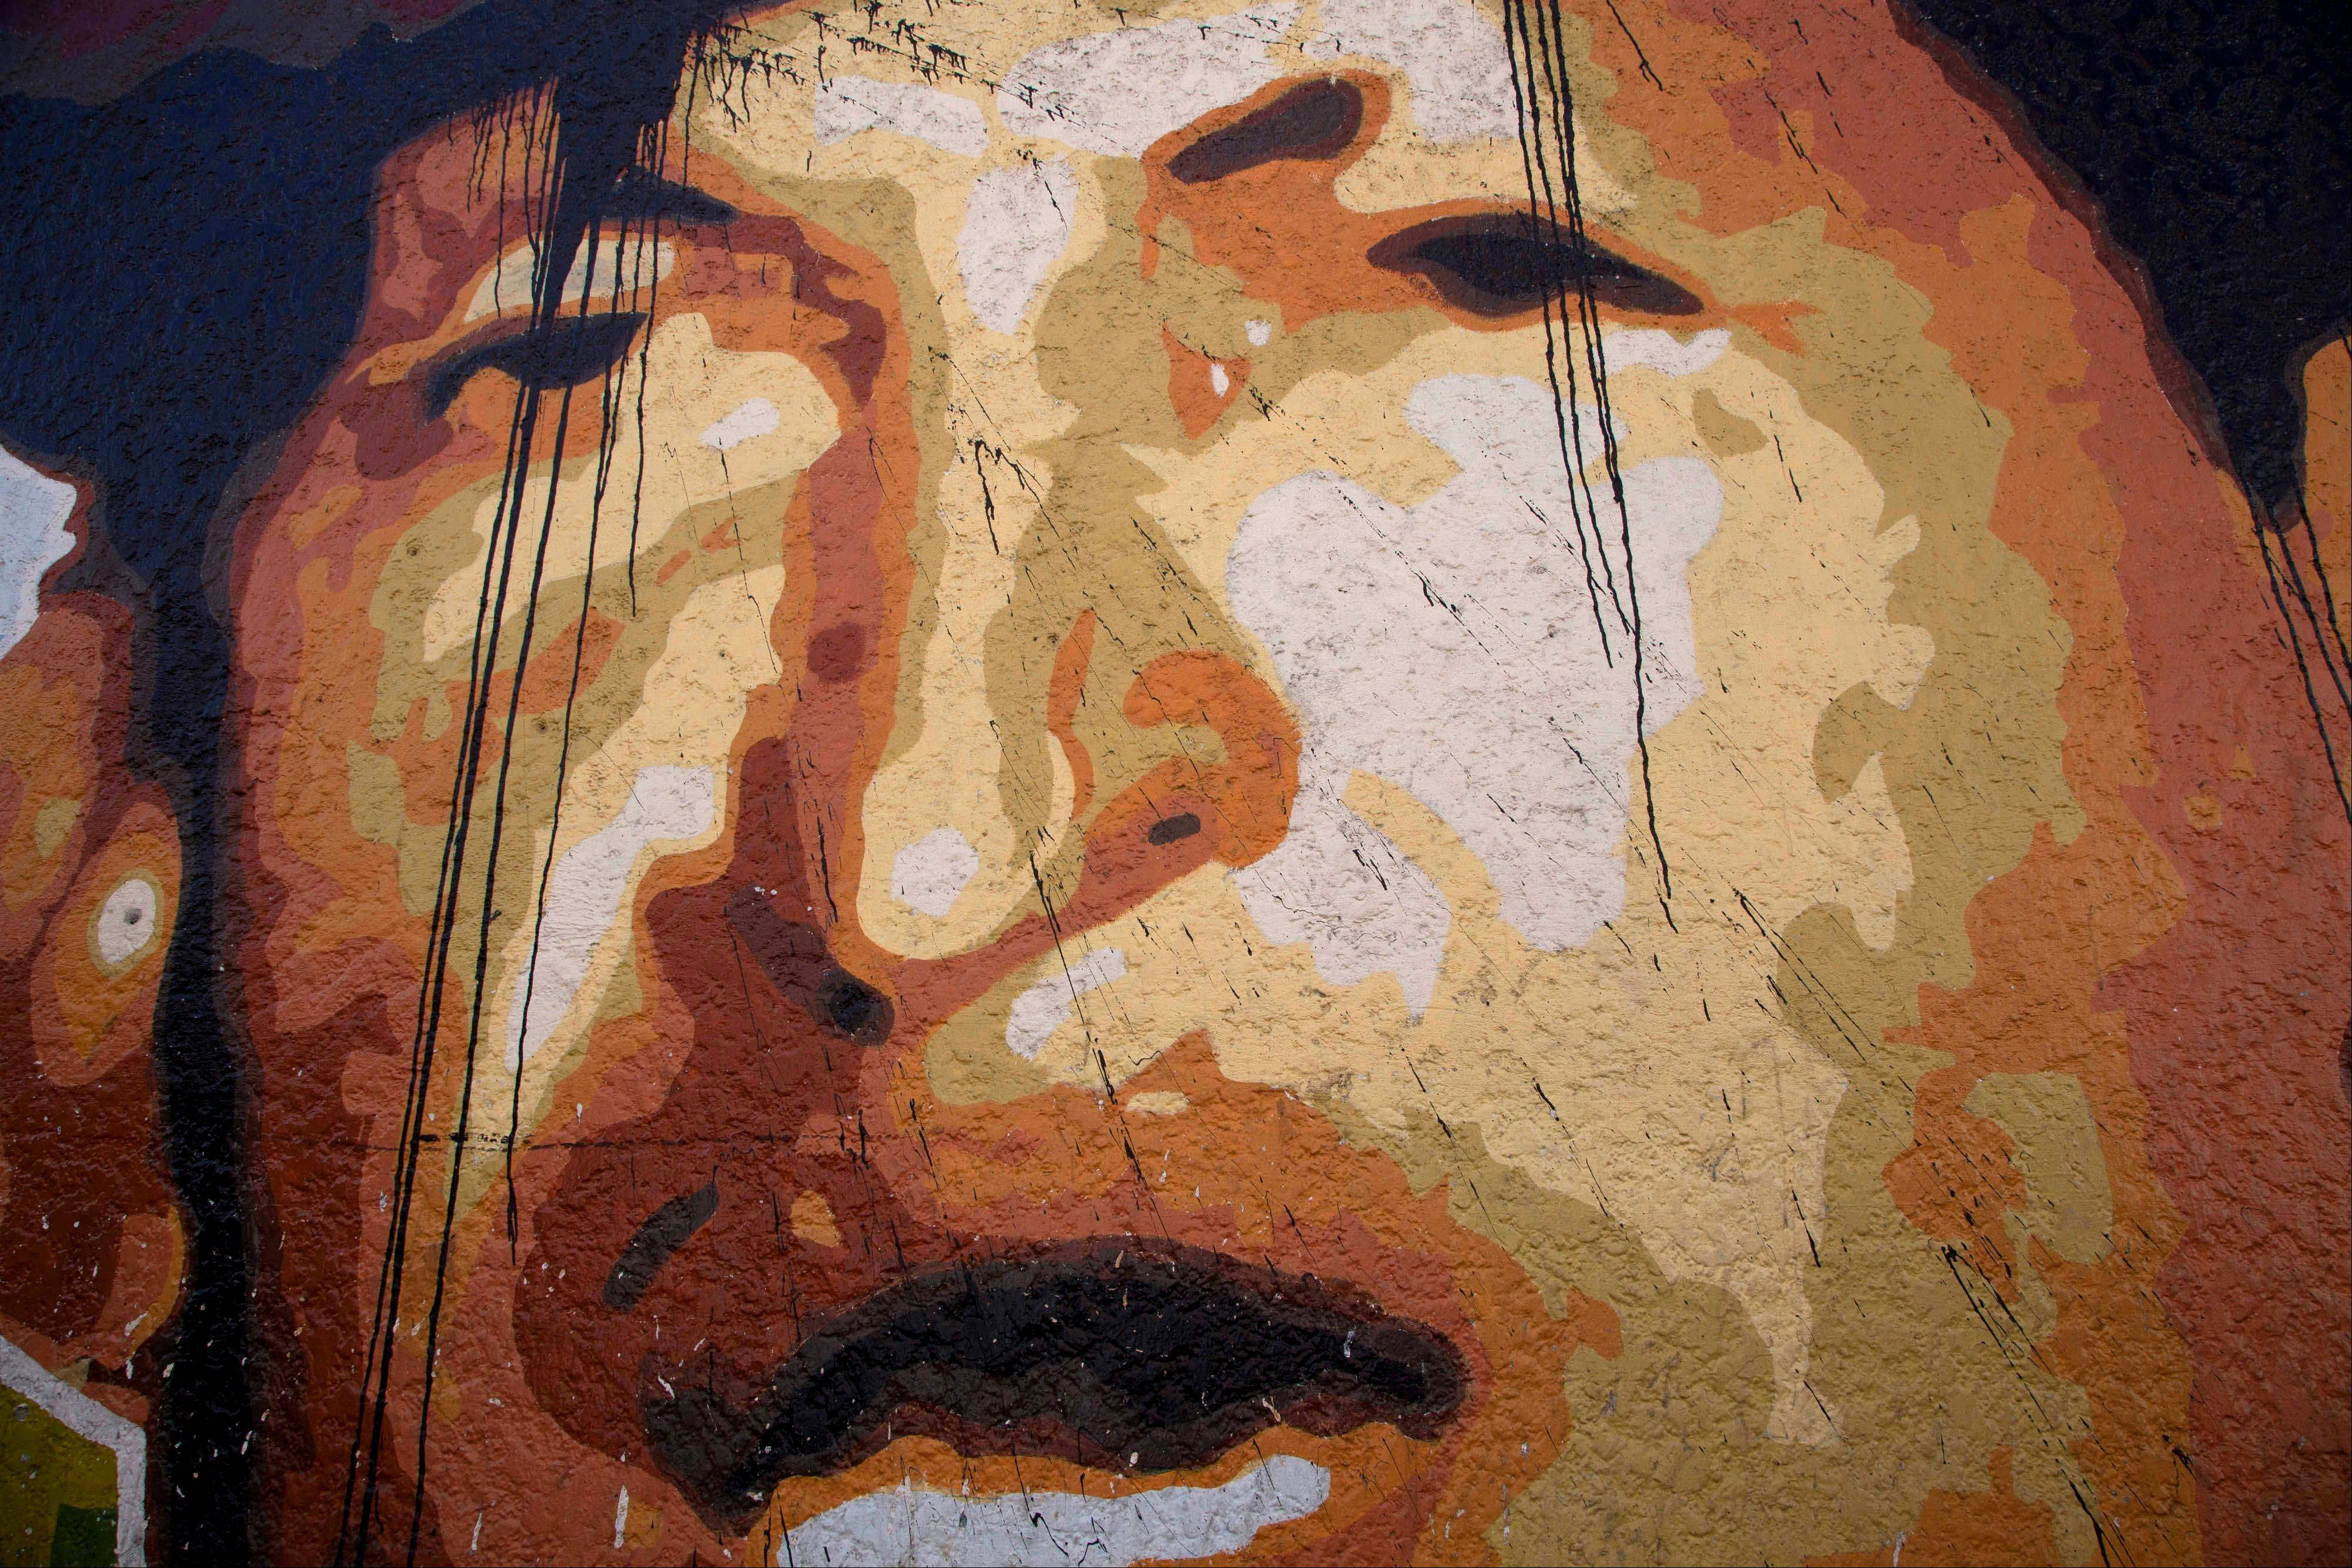 A mural depicting Venezuela�s President Hugo Chavez in Caracas, Venezuela, Thursday, Jan. 3, 2013. Venezuelan President Hugo Chavez is being treated for �respiratory deficiency� after complications from a severe lung infection, his government said, pointing to a deepening crisis for the ailing 58-year-old president.